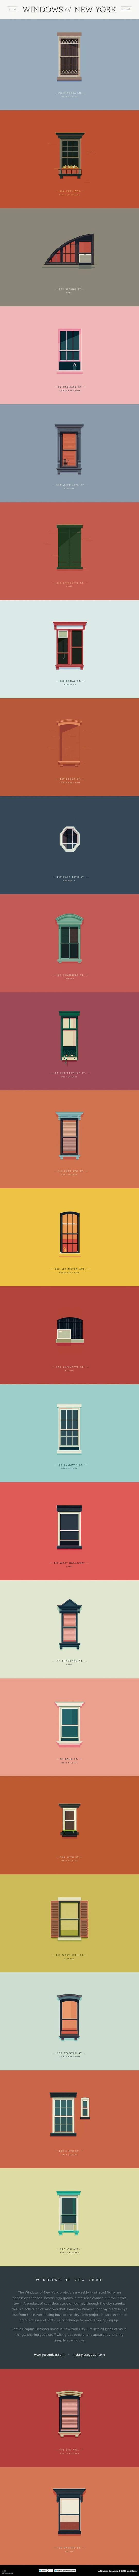 Graphic illustrations of window in Graphic illustration